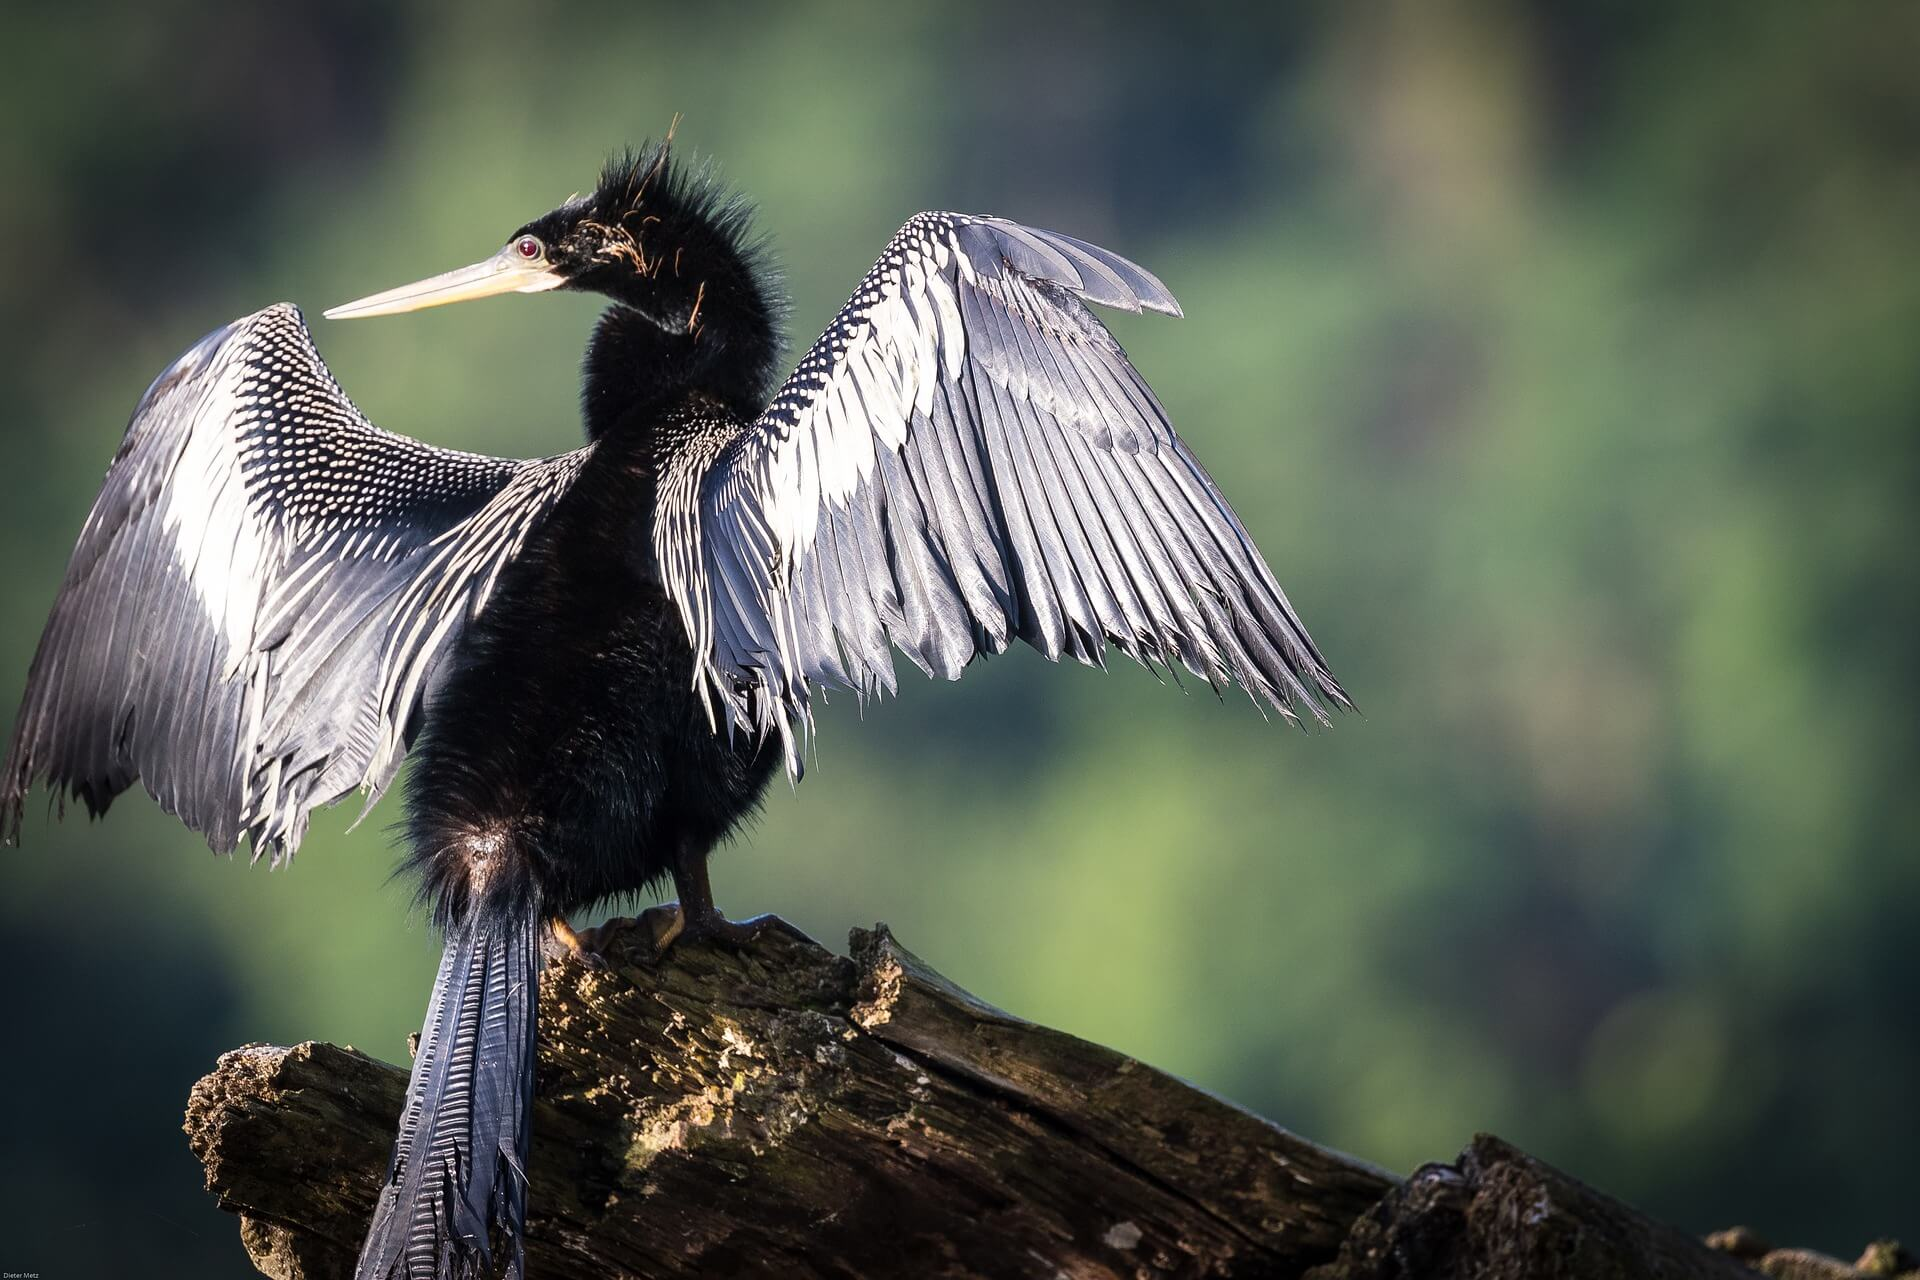 The biodiversity of Costa Rica's birds